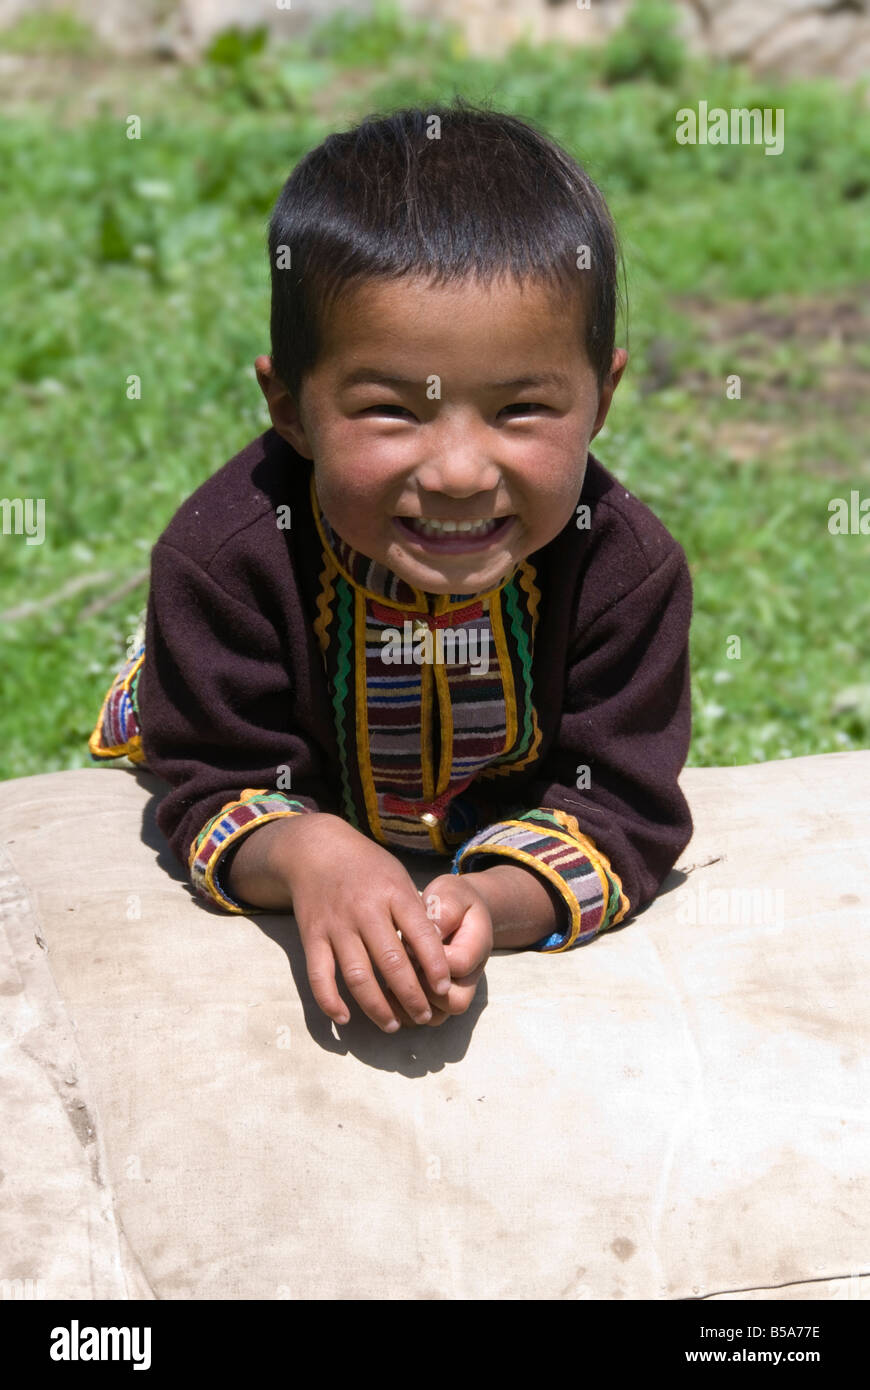 Smiling Tibetan child in a rural village on the nomadic grasslands in Sichuan, China. Stock Photo